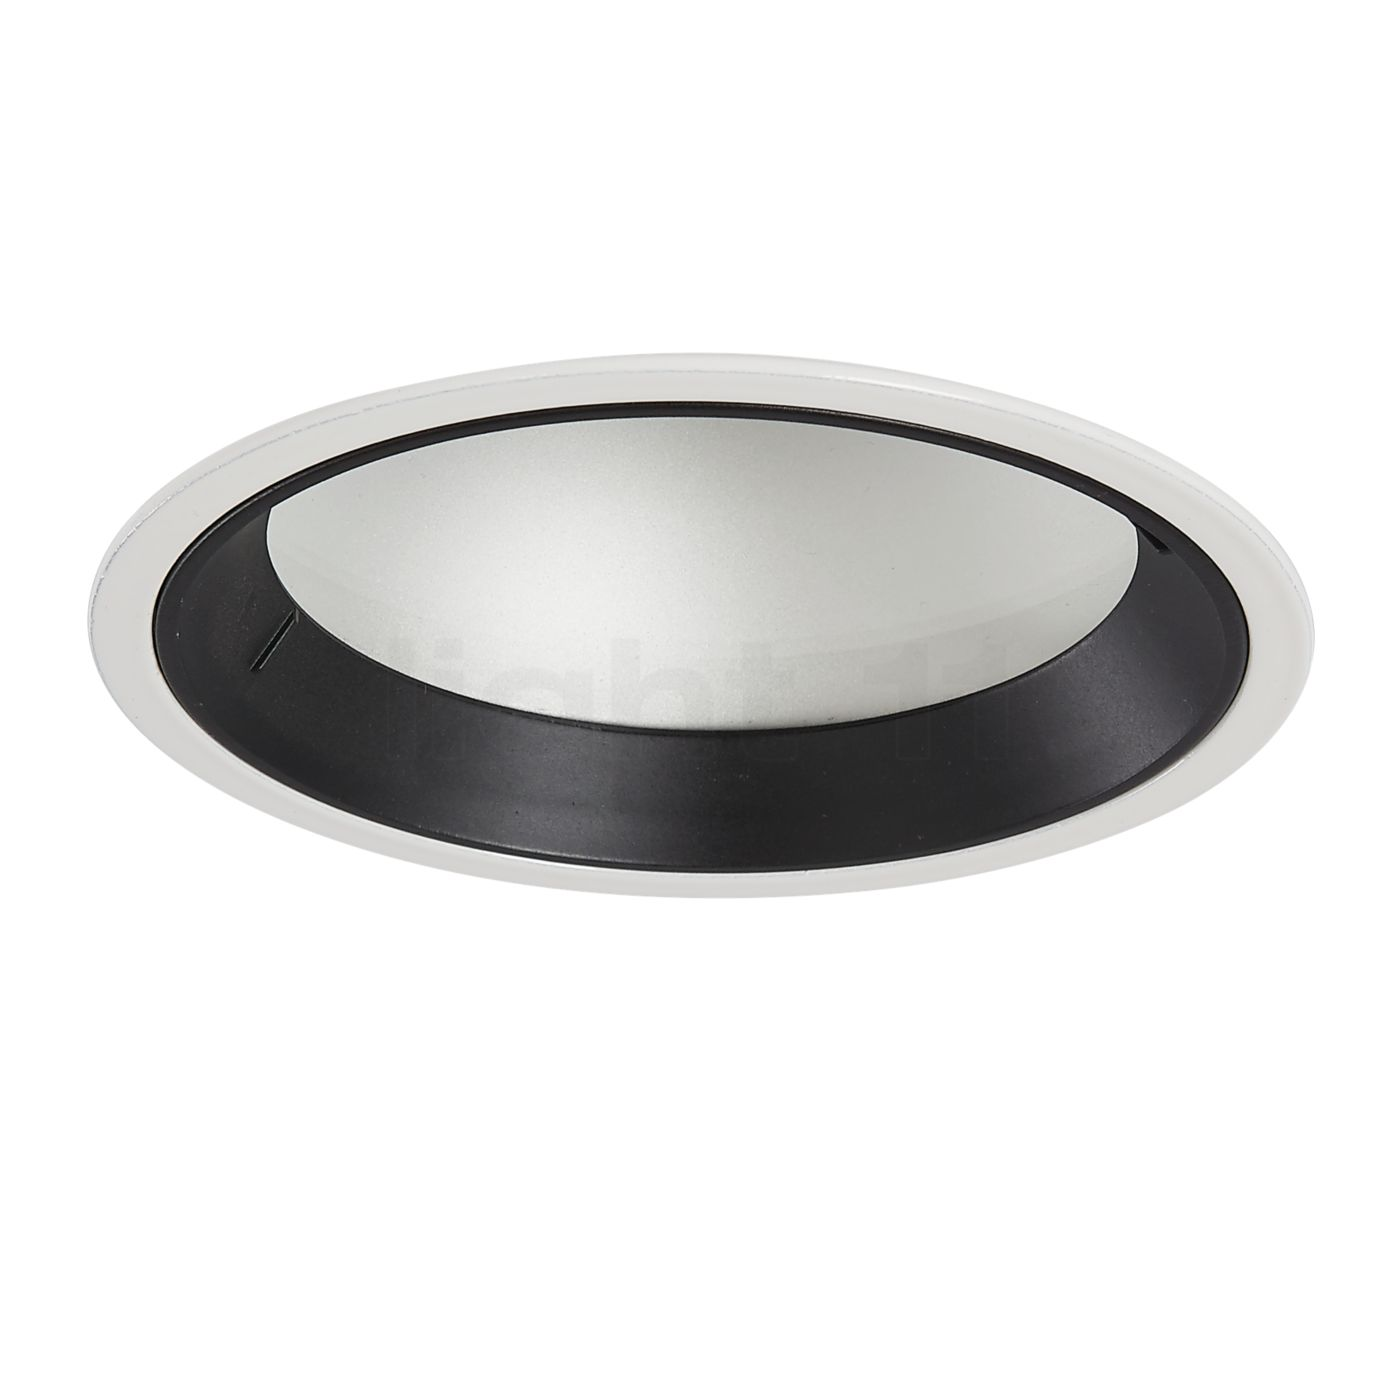 led recessed ceiling lights. Led Recessed Ceiling Lights E